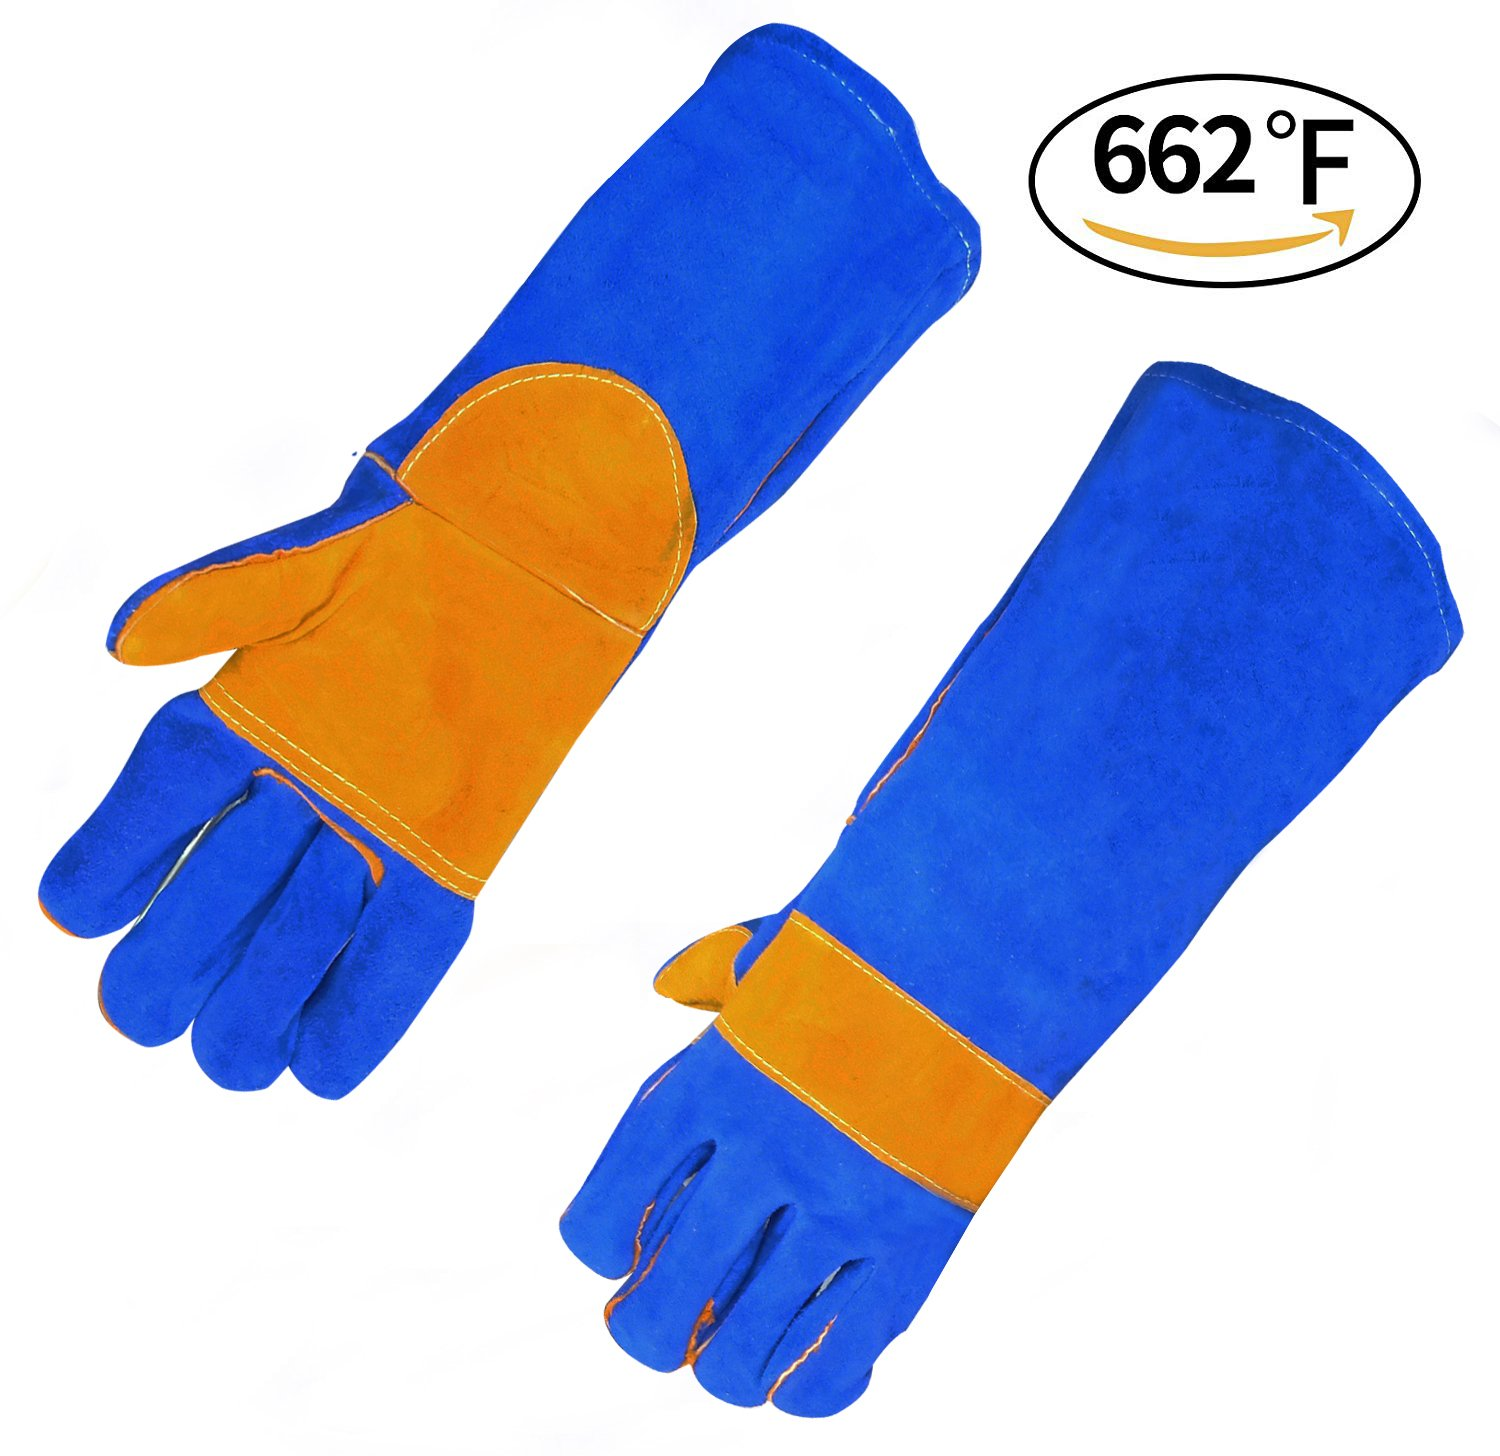 Fantran Leather Forge Welding Gloves With Heat & Fire Resistant, Best for Welding & Oven & Grill & Fireplace & Stove & BBQ – Soft Cotton Lining With 16 inches Long Sleeve. (blue)